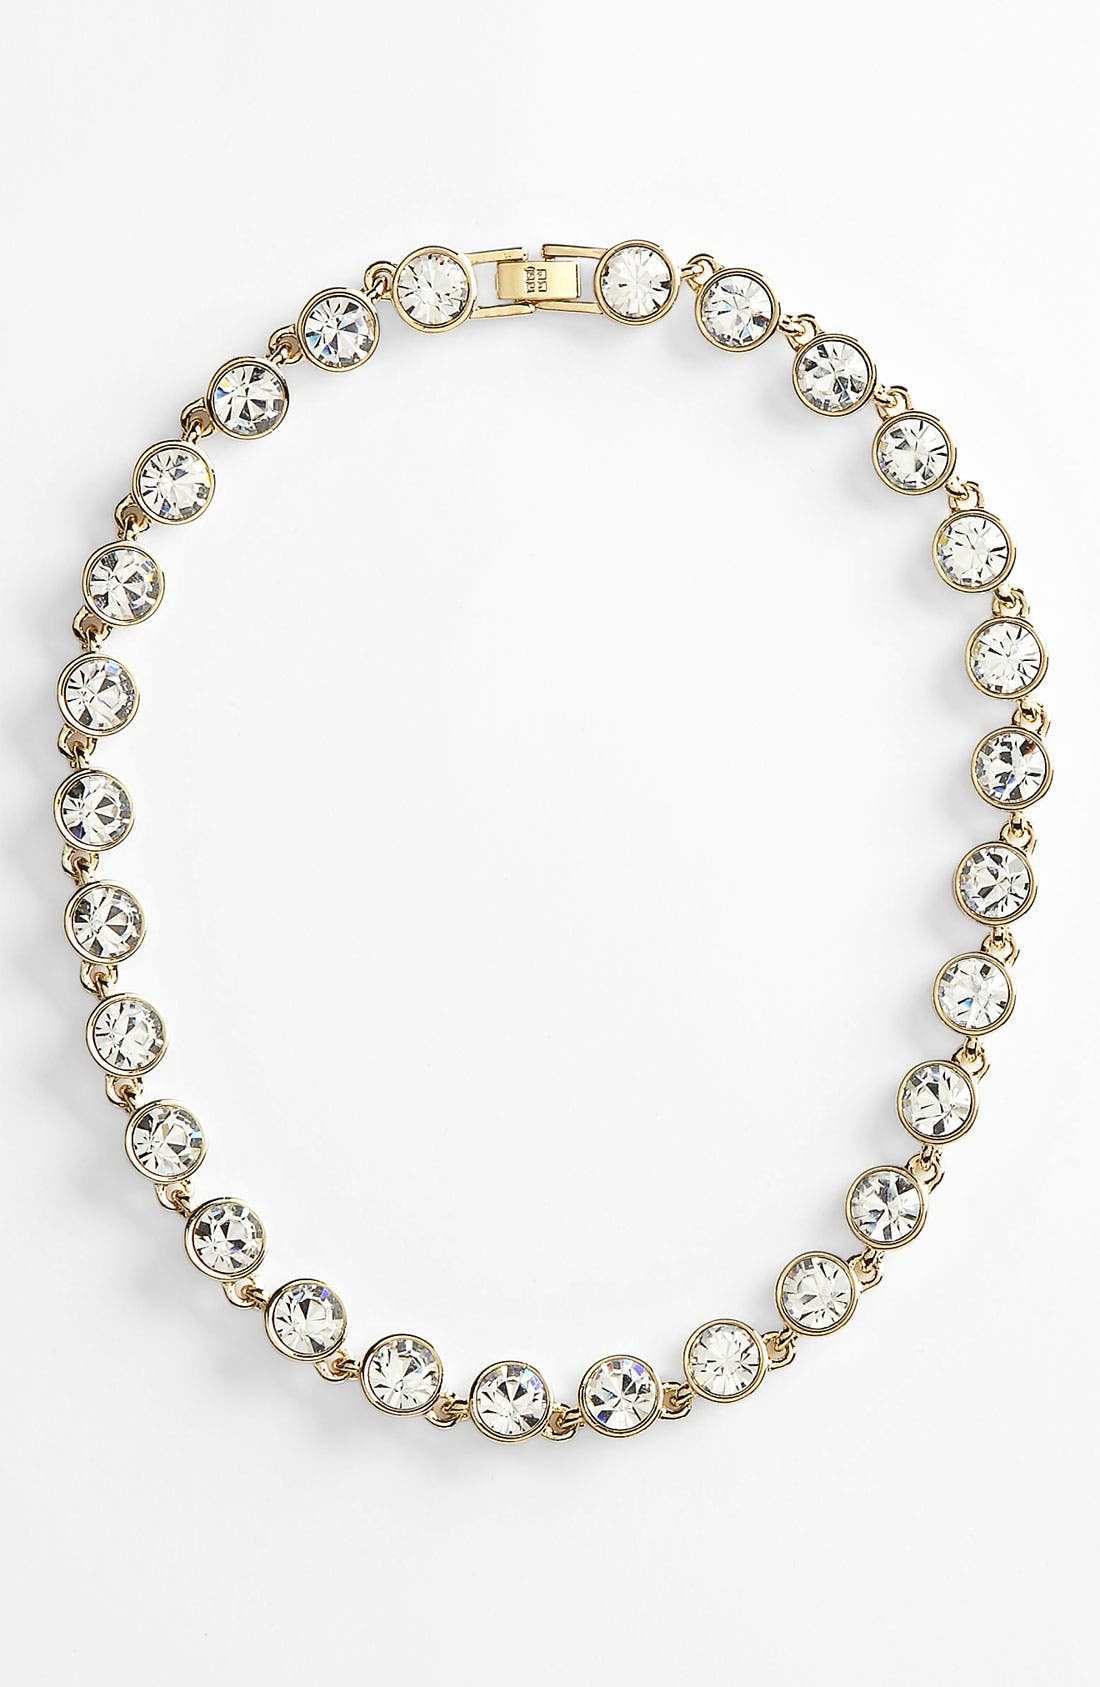 Main Image - Givenchy Crystal Station Collar Necklace (Nordstrom Exclusive)